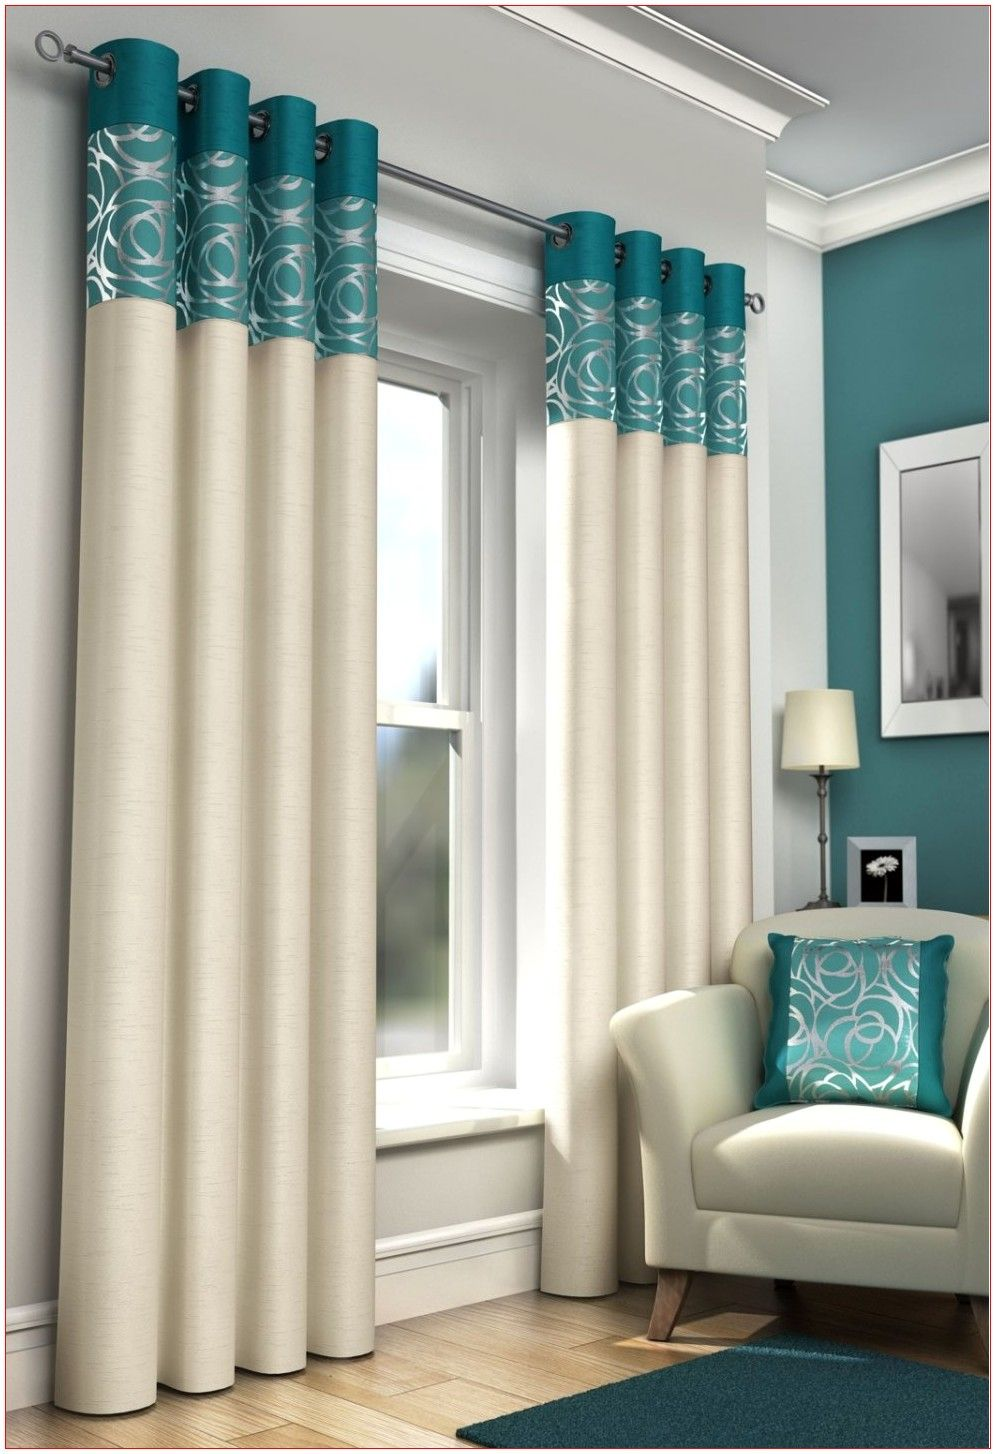 Drapes For Living Room Teal In 2020 Teal Curtains Curtain Designs Home Curtains